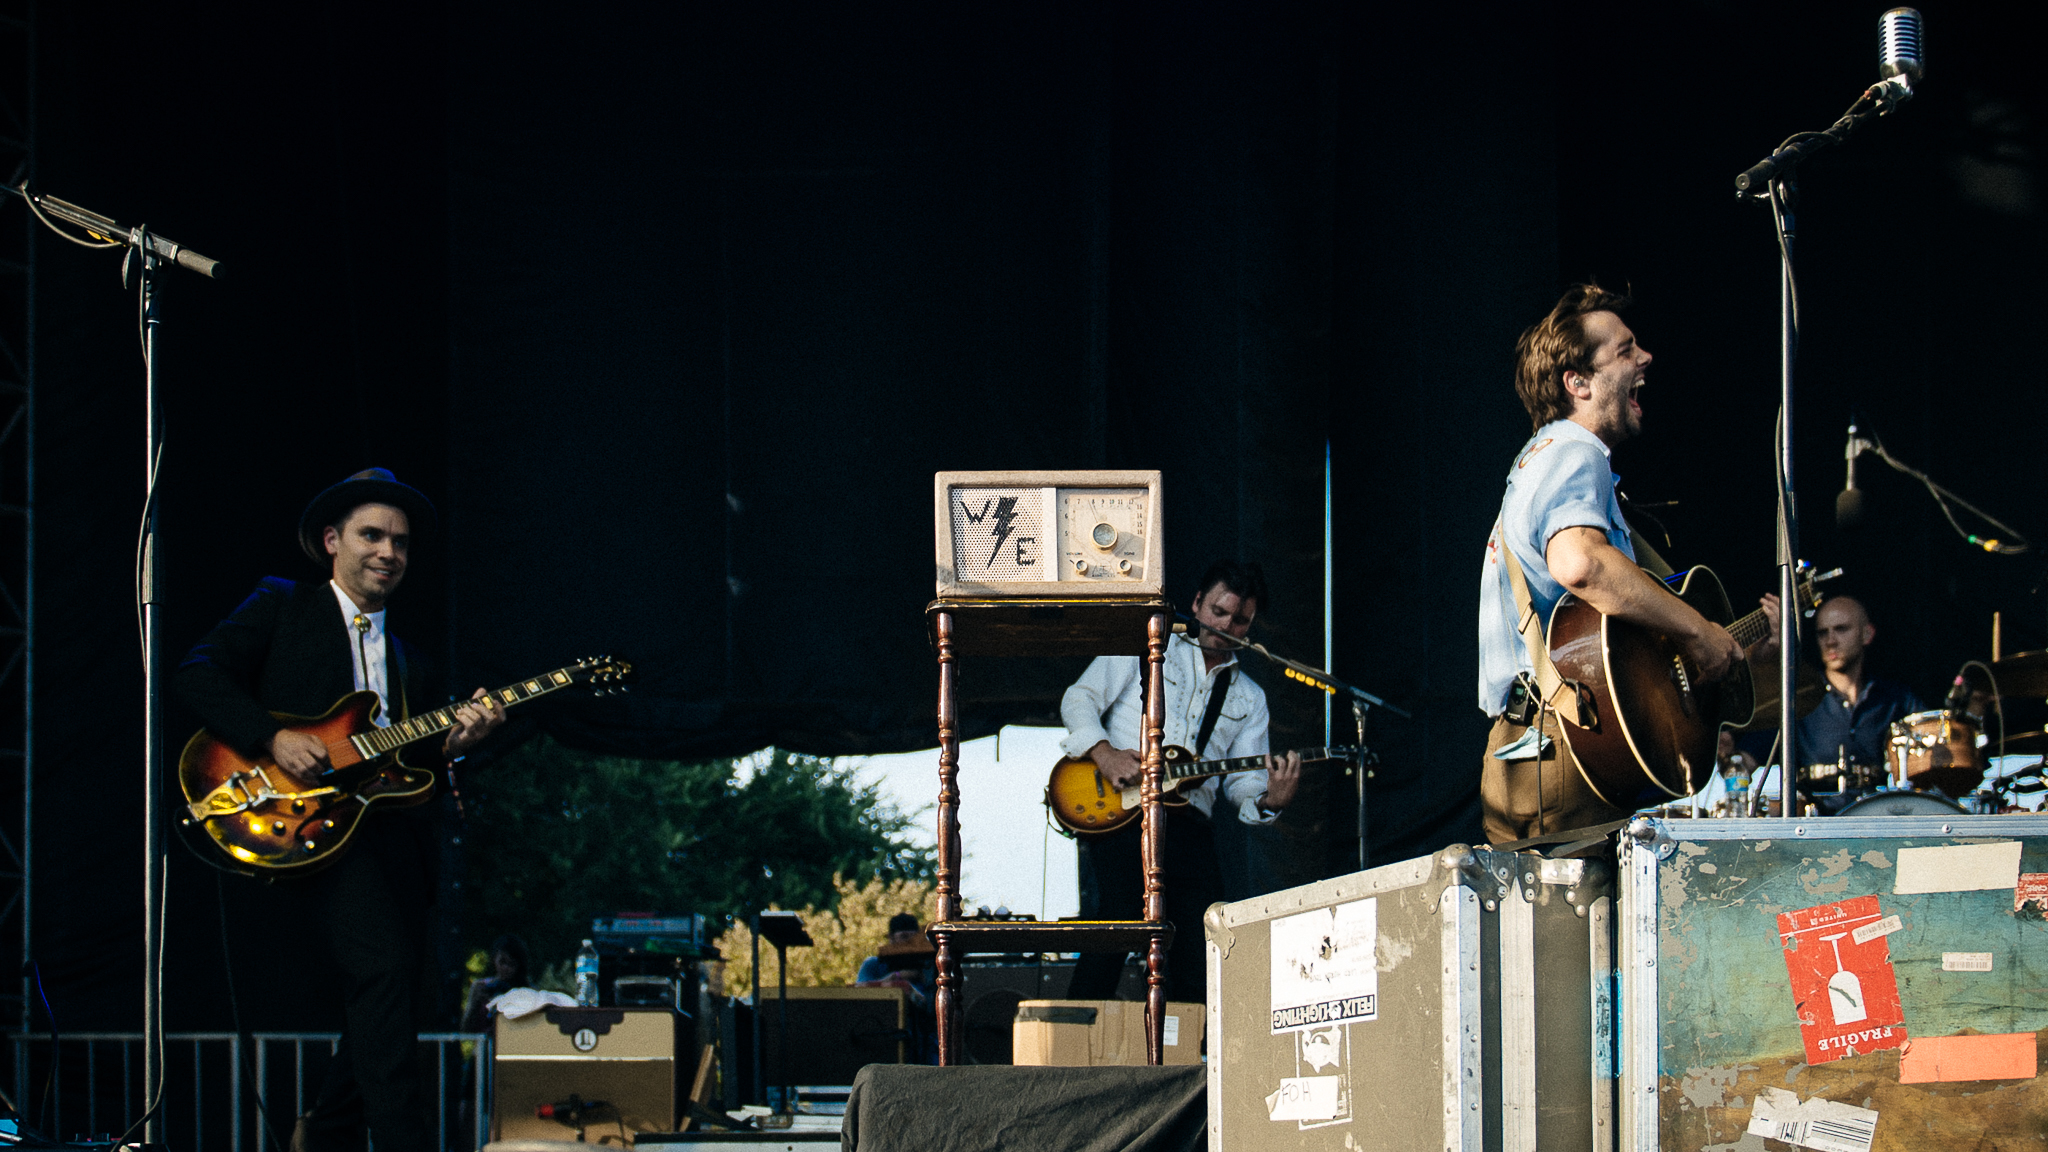 Lord Huron hit the stage in Grant Park on the final day of Lollapalooza on August 2, 2015.